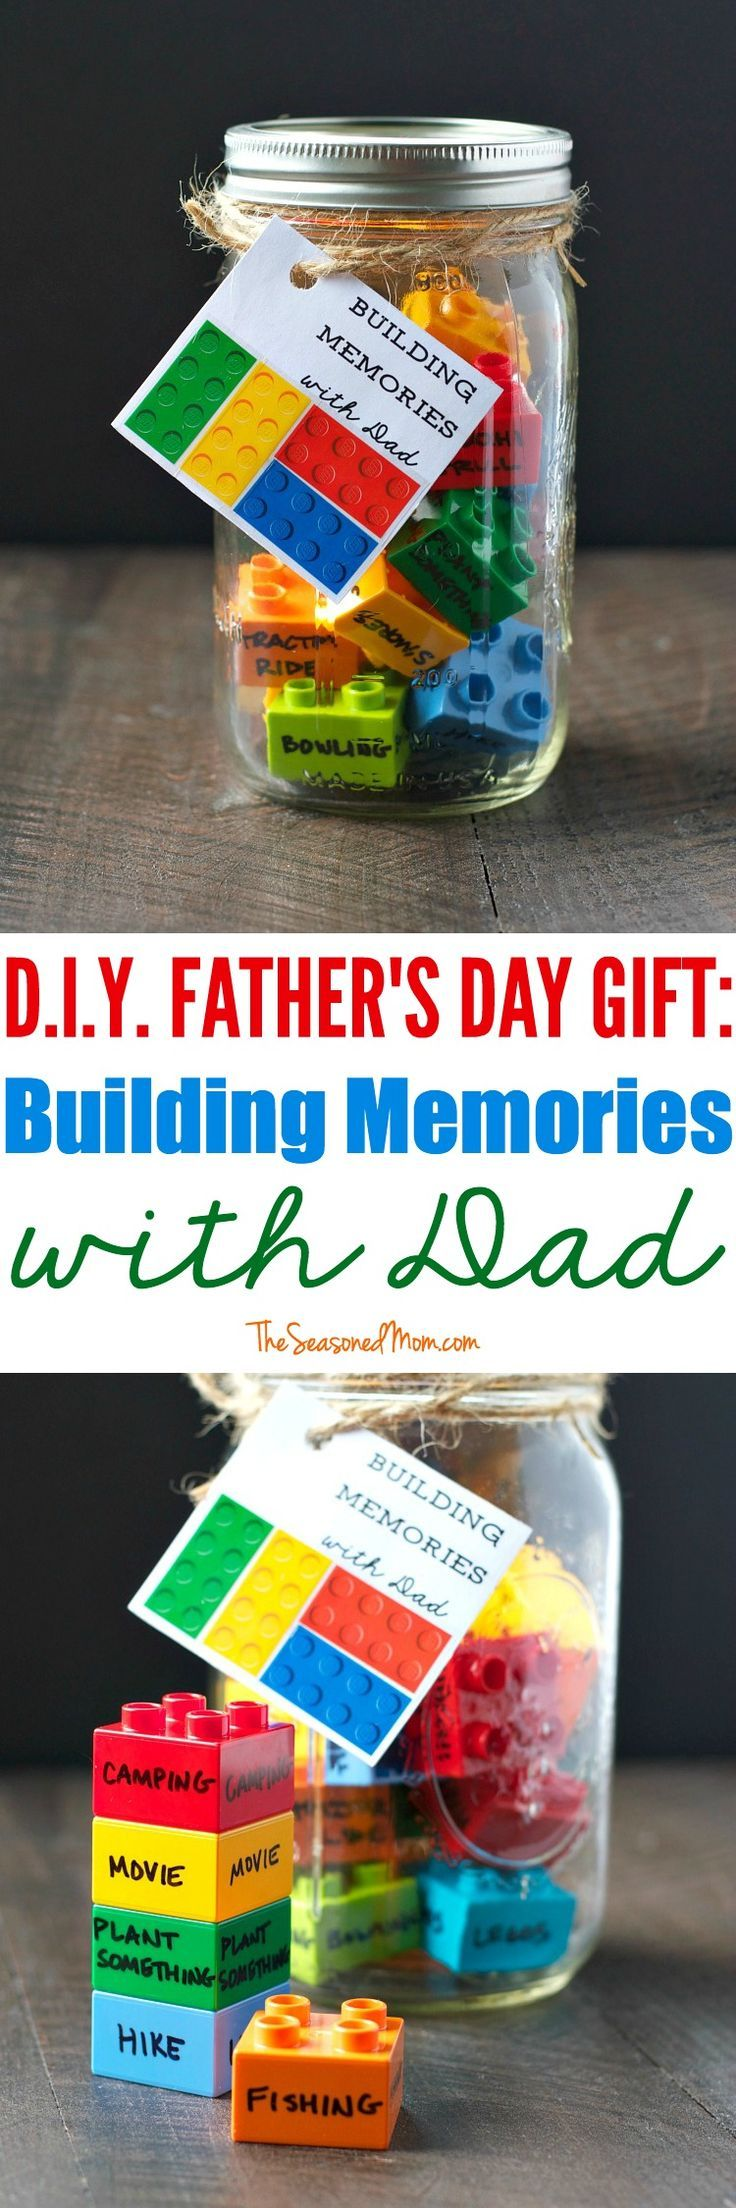 25+ unique Grandpa birthday gifts ideas on Pinterest | DIY ...